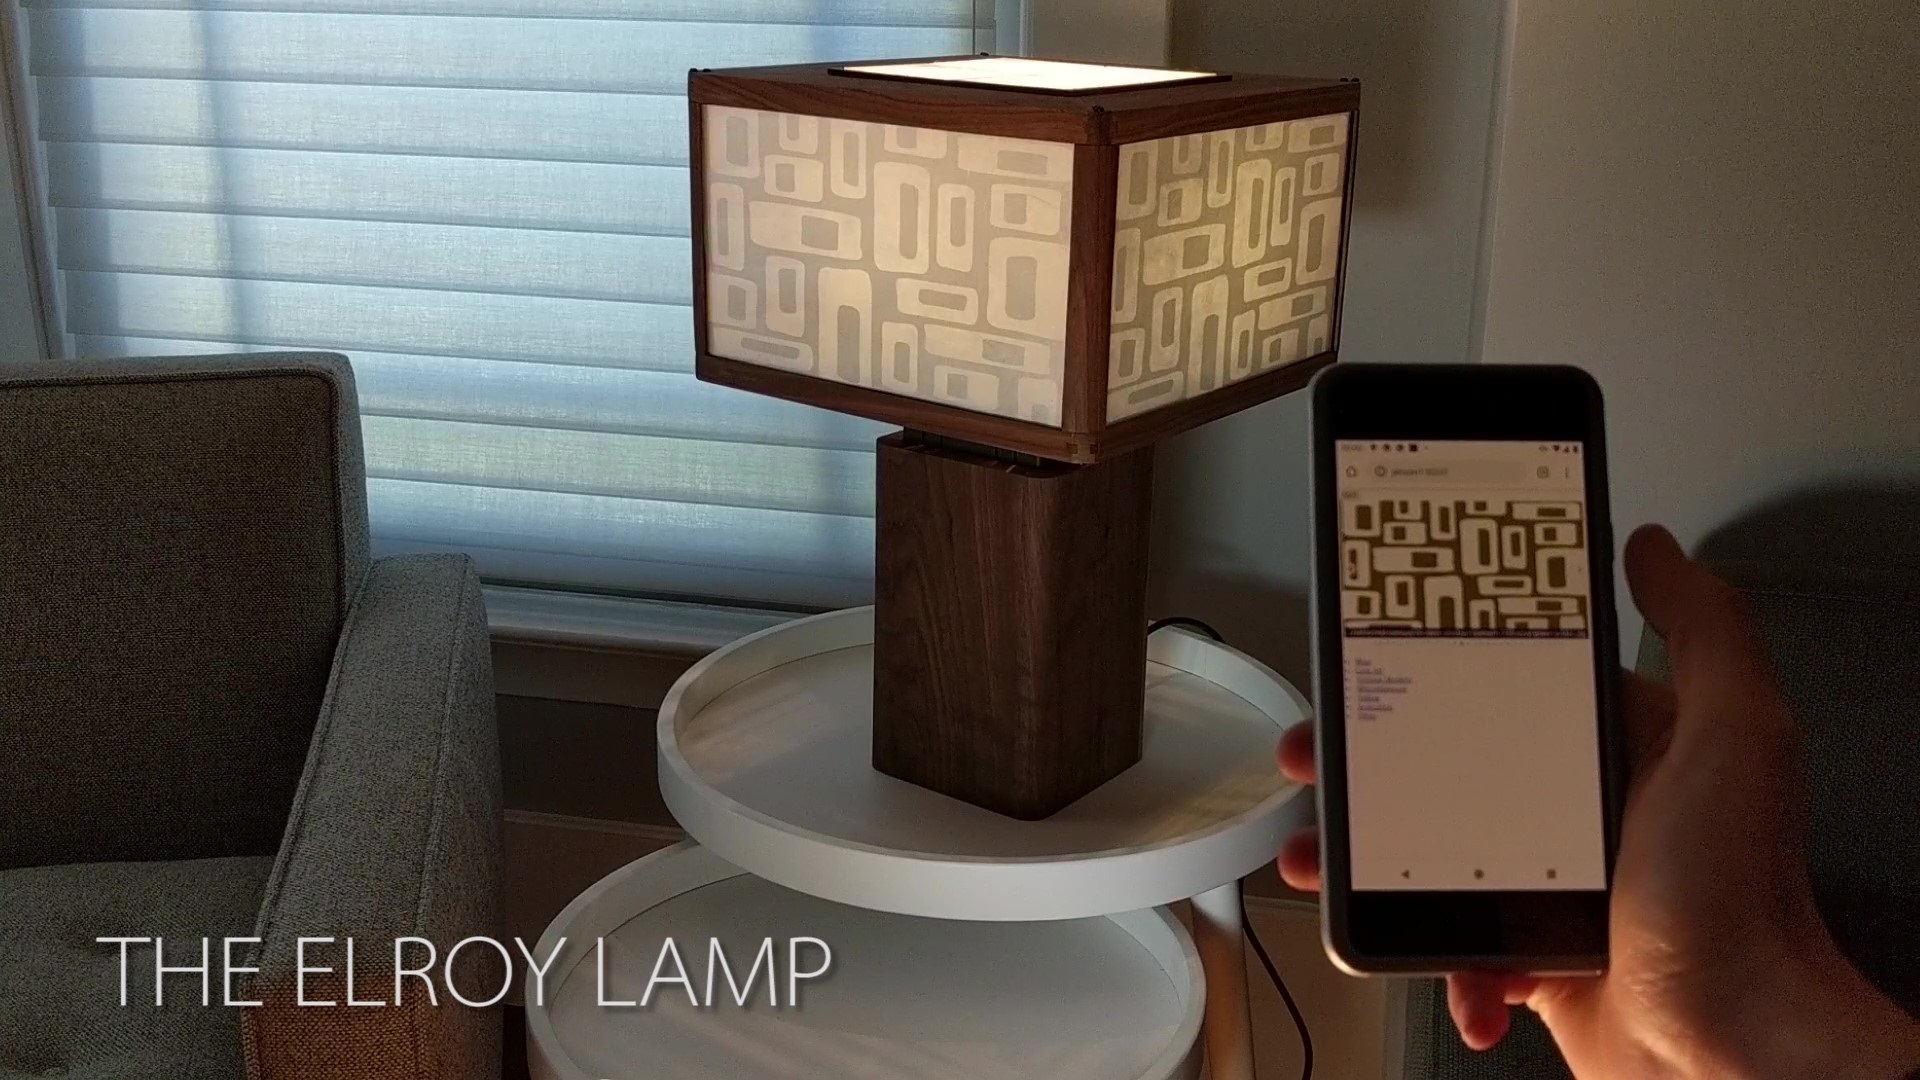 The Elroy Lamp: A transparent LCD lamp | Kyle's Make Blog